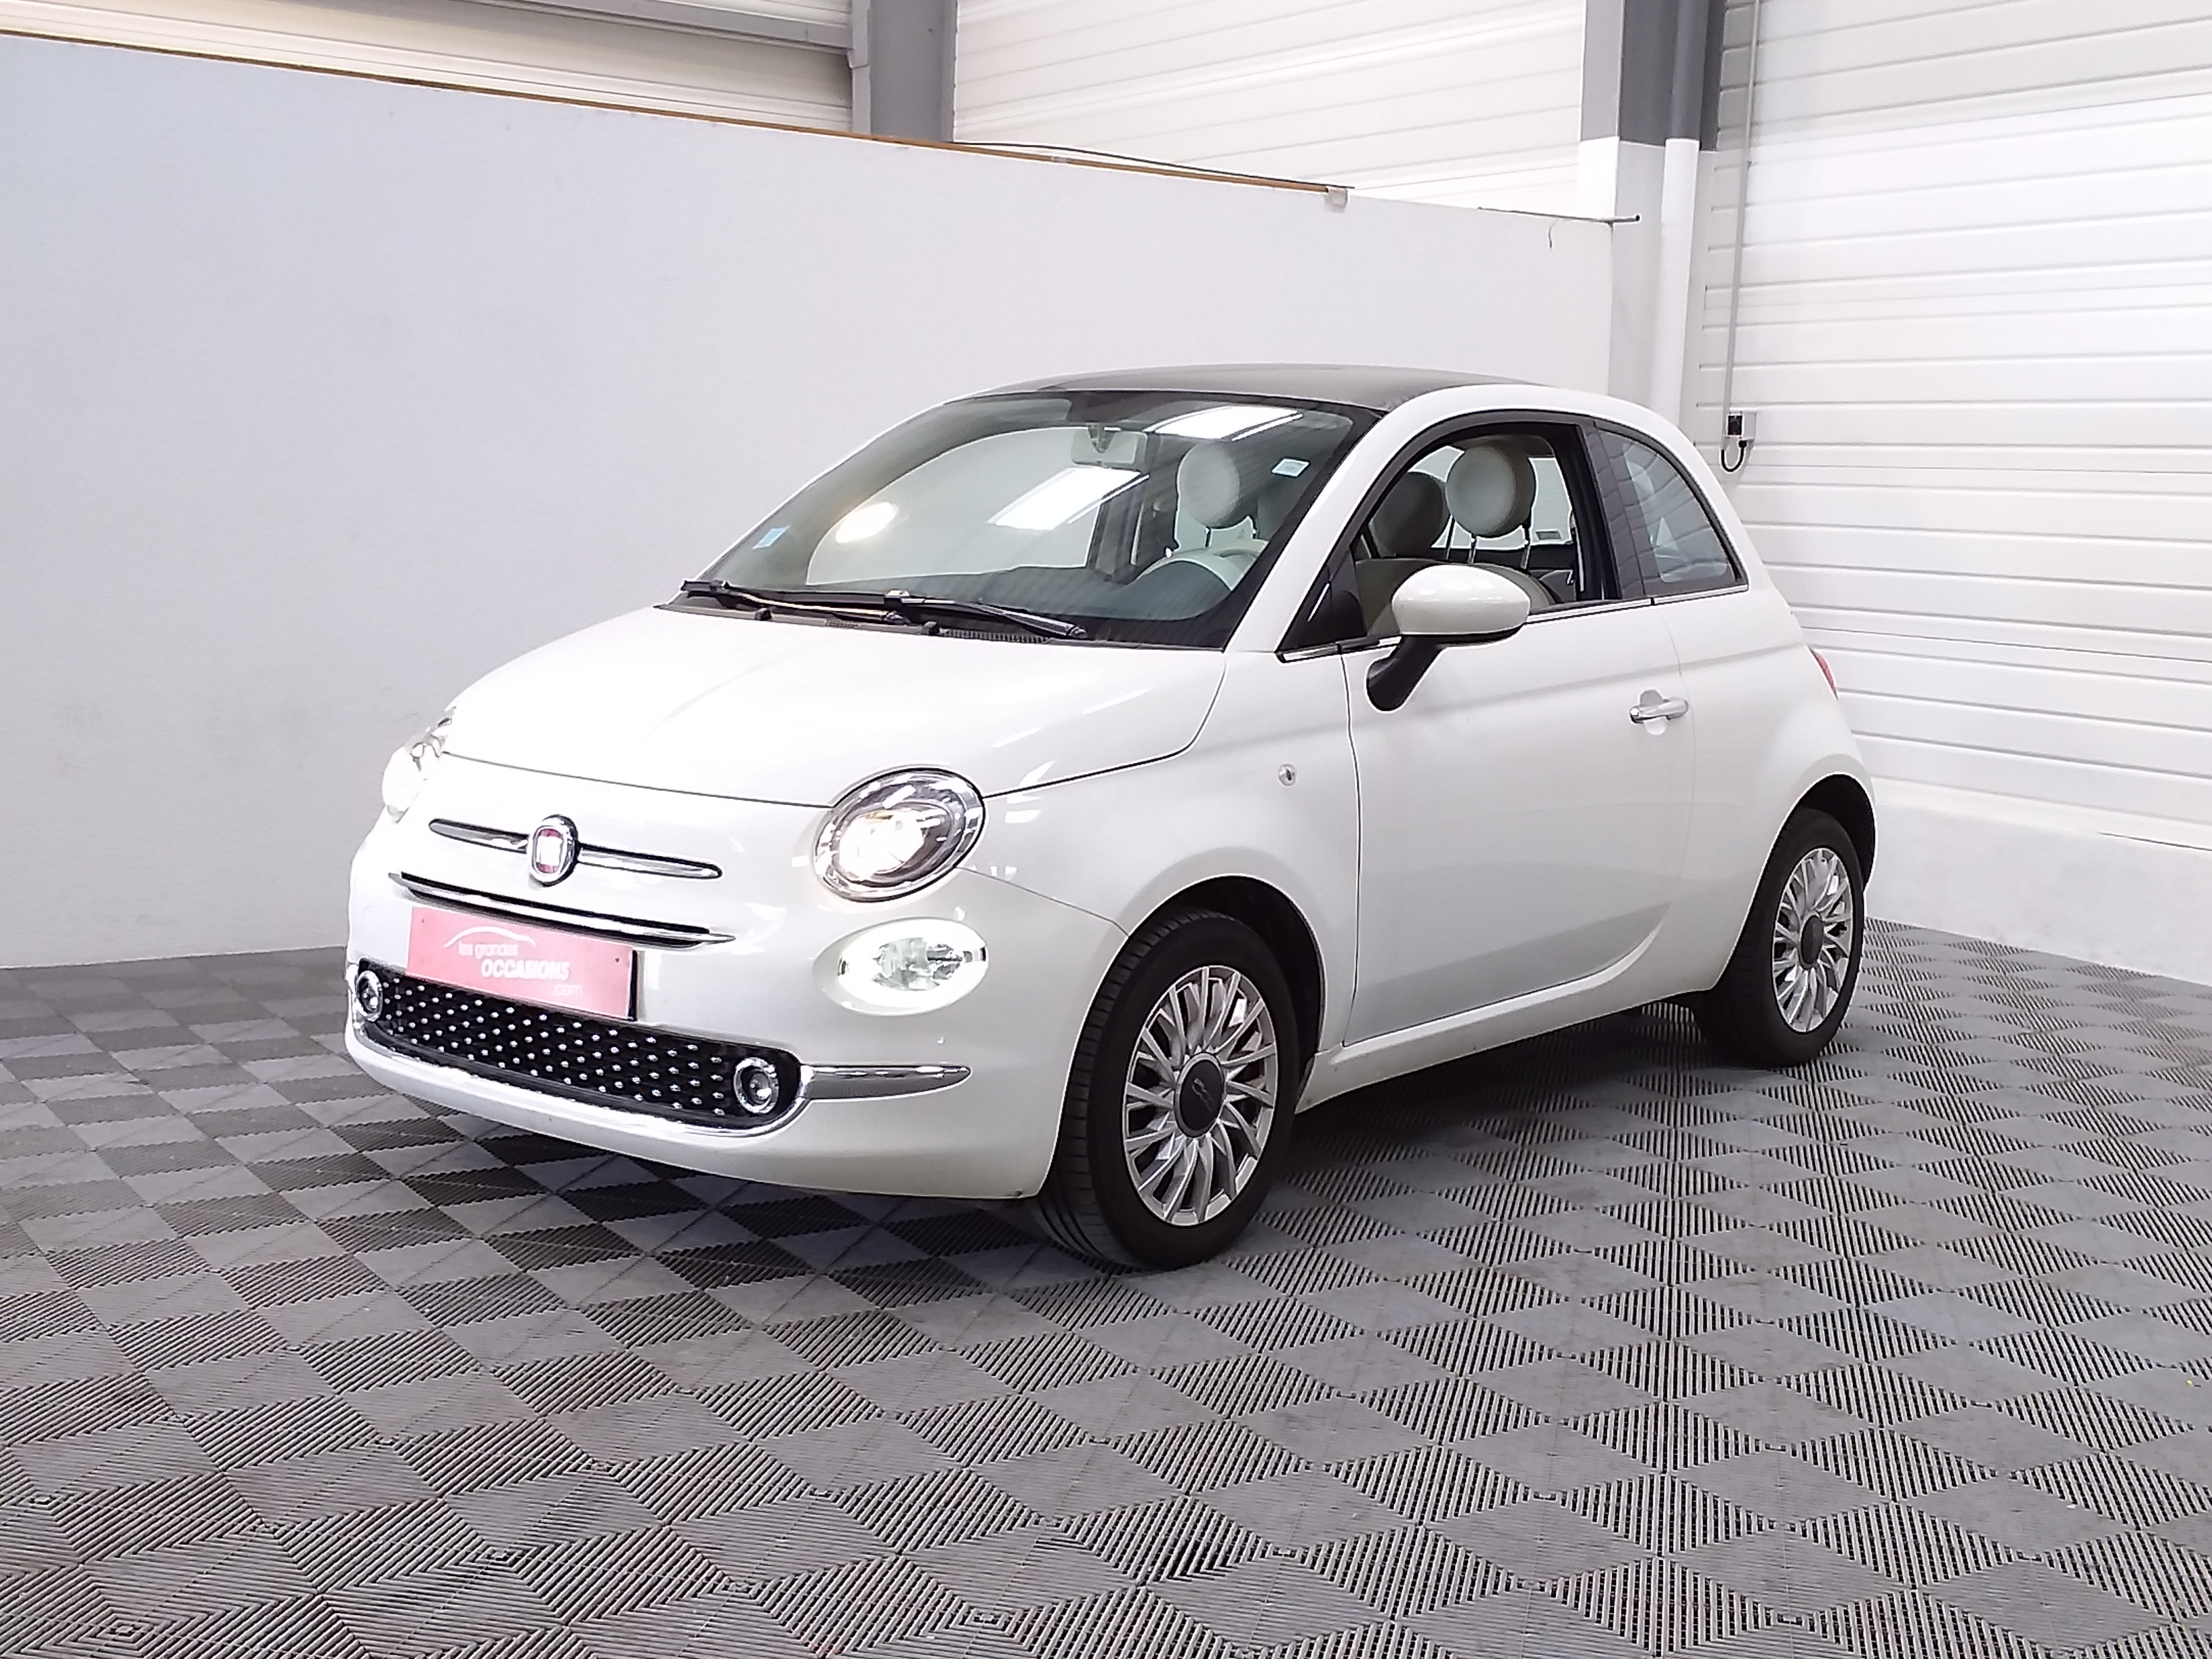 Photo du véhicule FIAT 500 SERIE 6 EURO 6D 1.2 69 ch Eco Pack Lounge